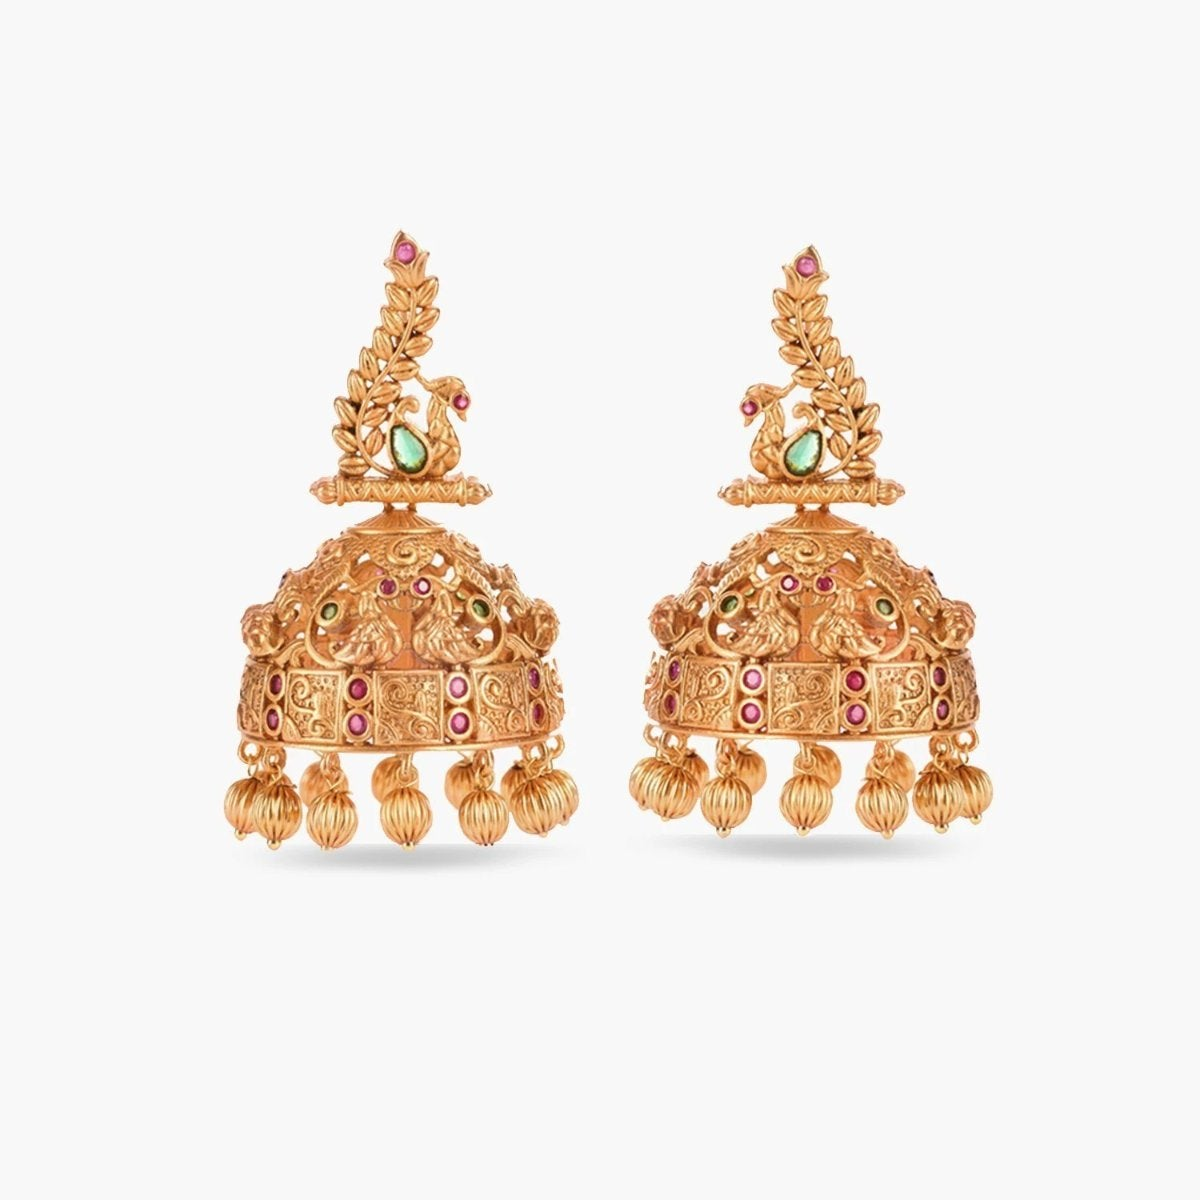 Hana Antique Jhumka Earrings